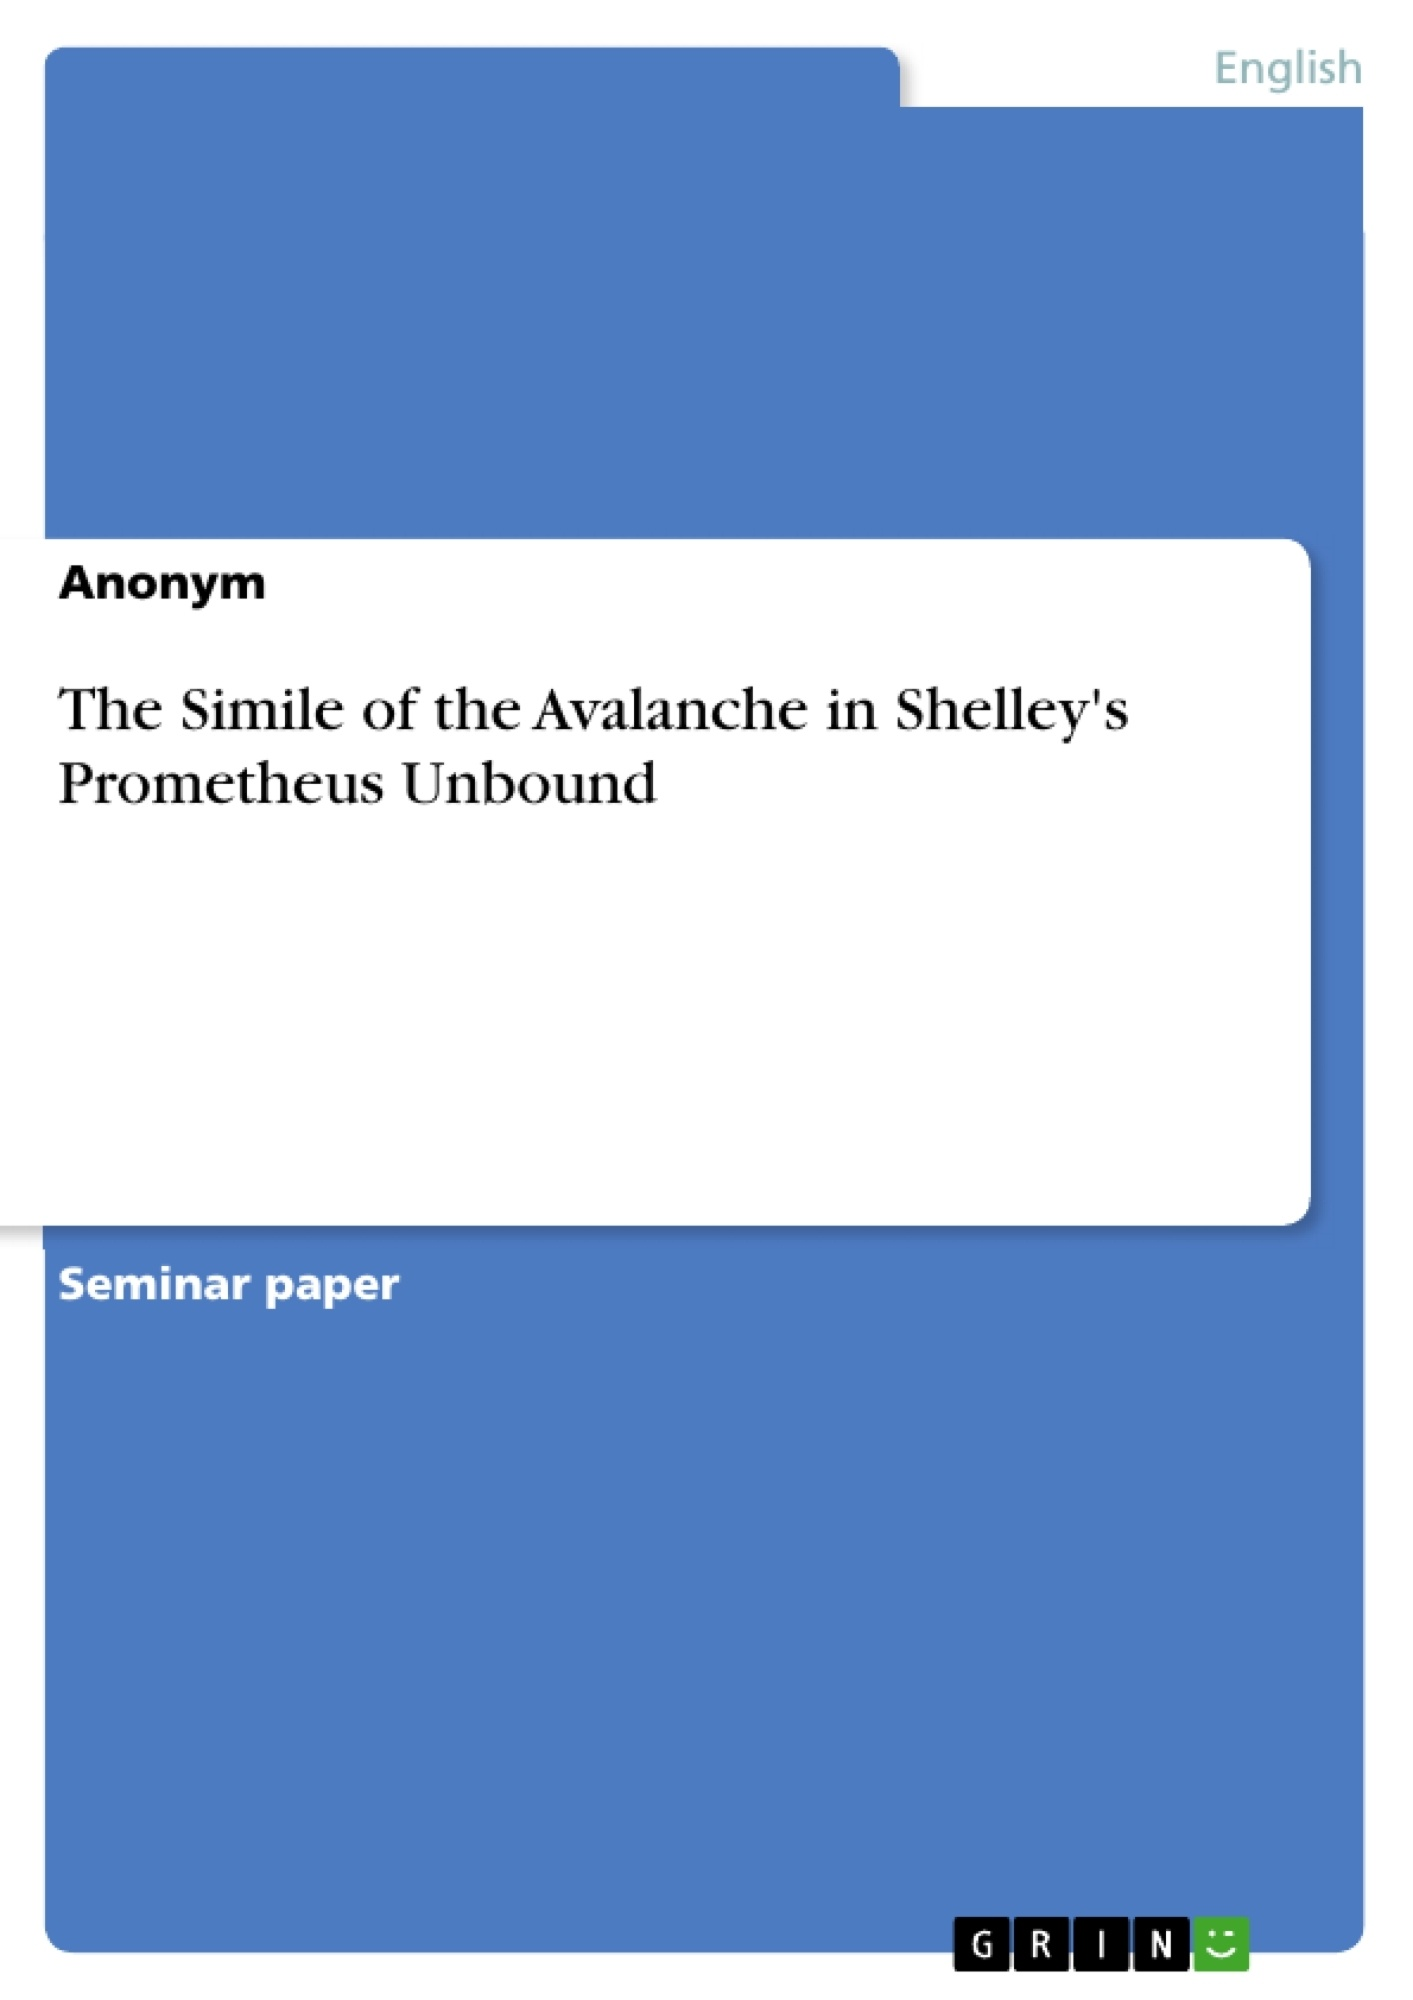 Title: The Simile of the Avalanche in Shelley's Prometheus Unbound